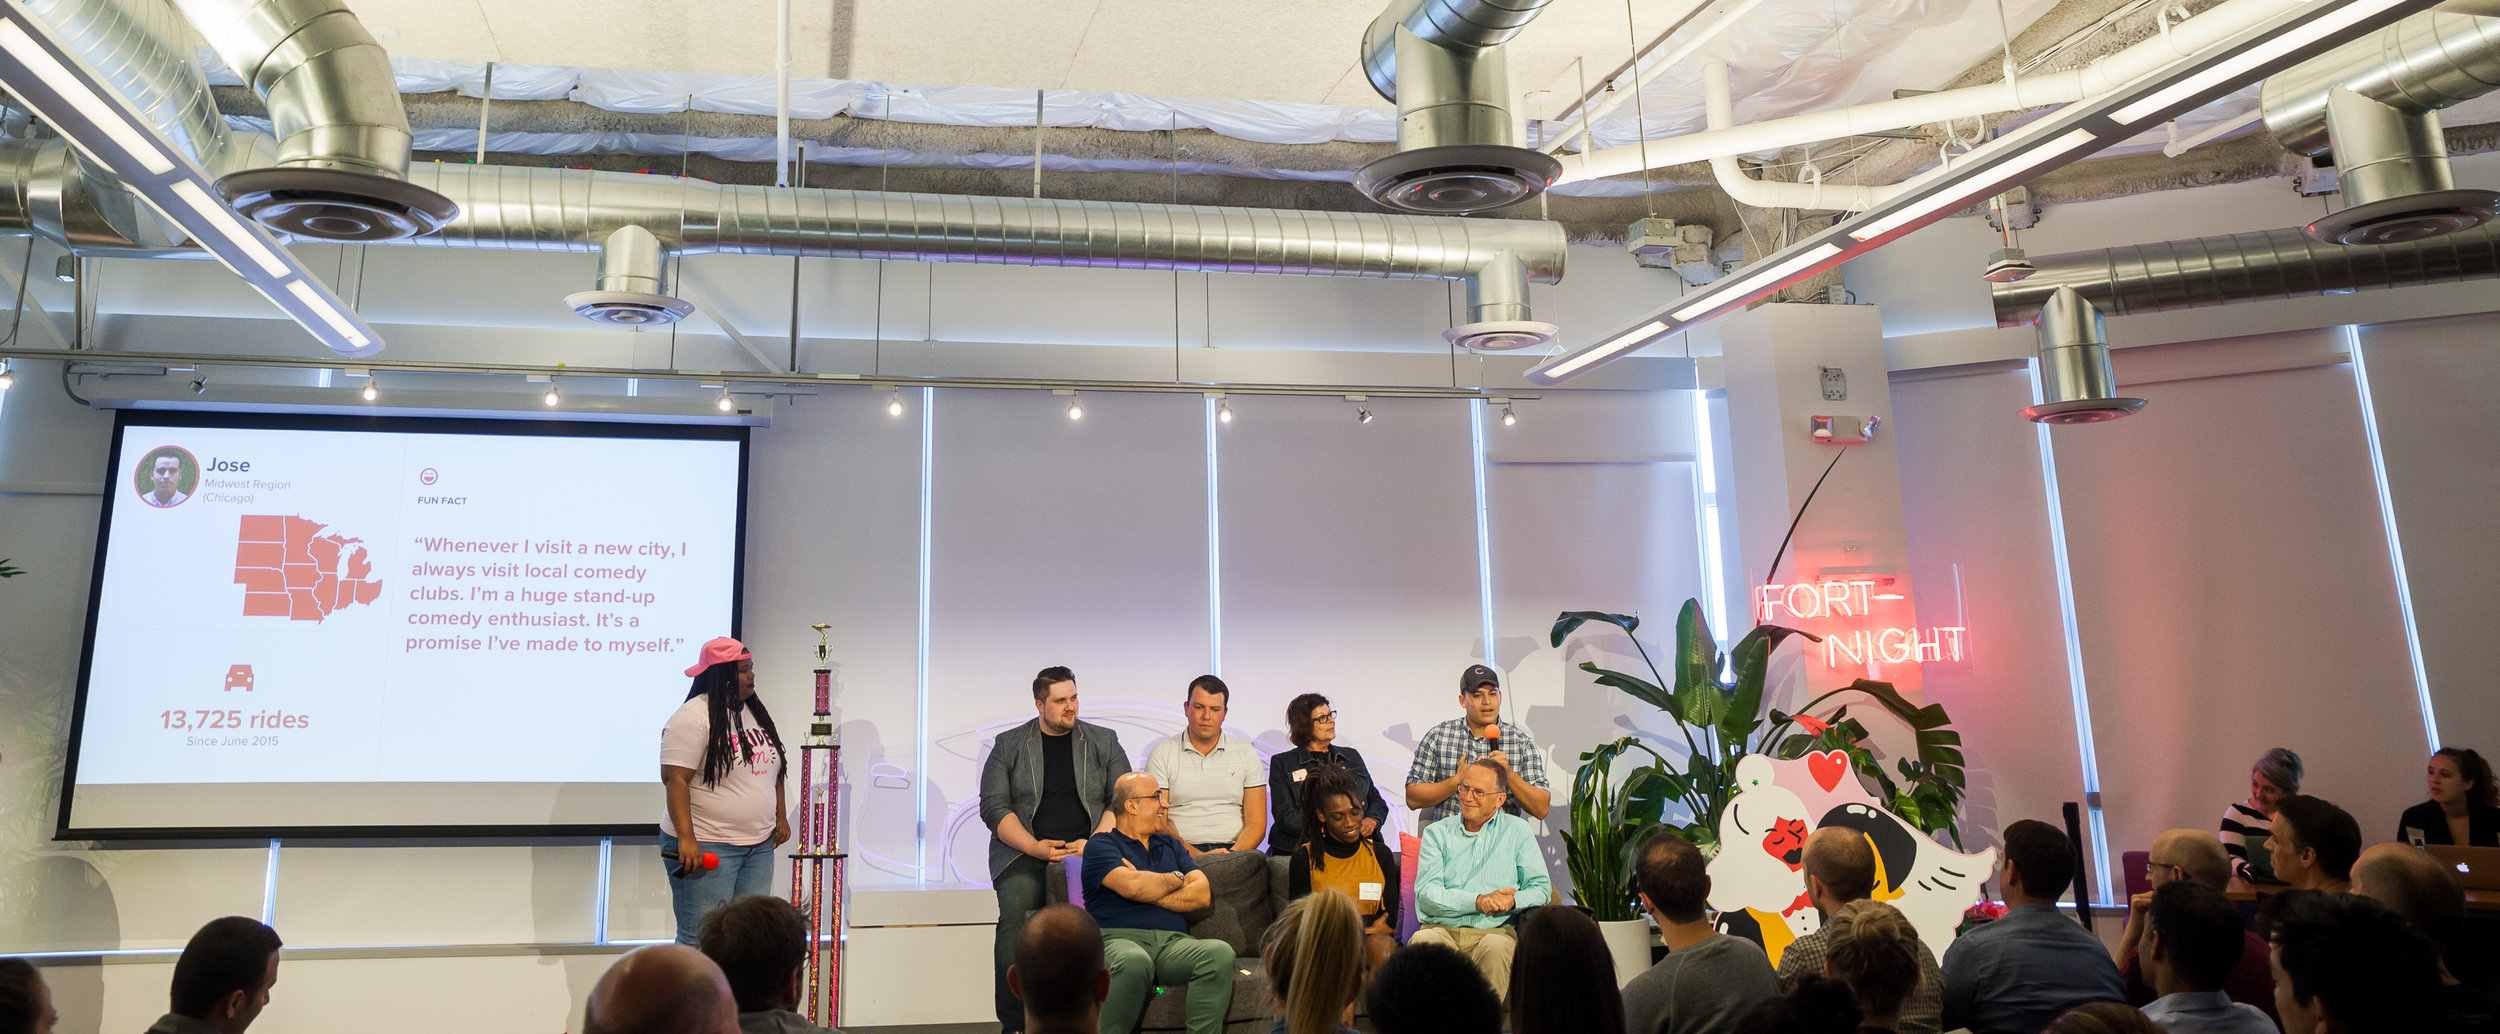 The DAC on stage presenting at Lyft's all-hands company meeting